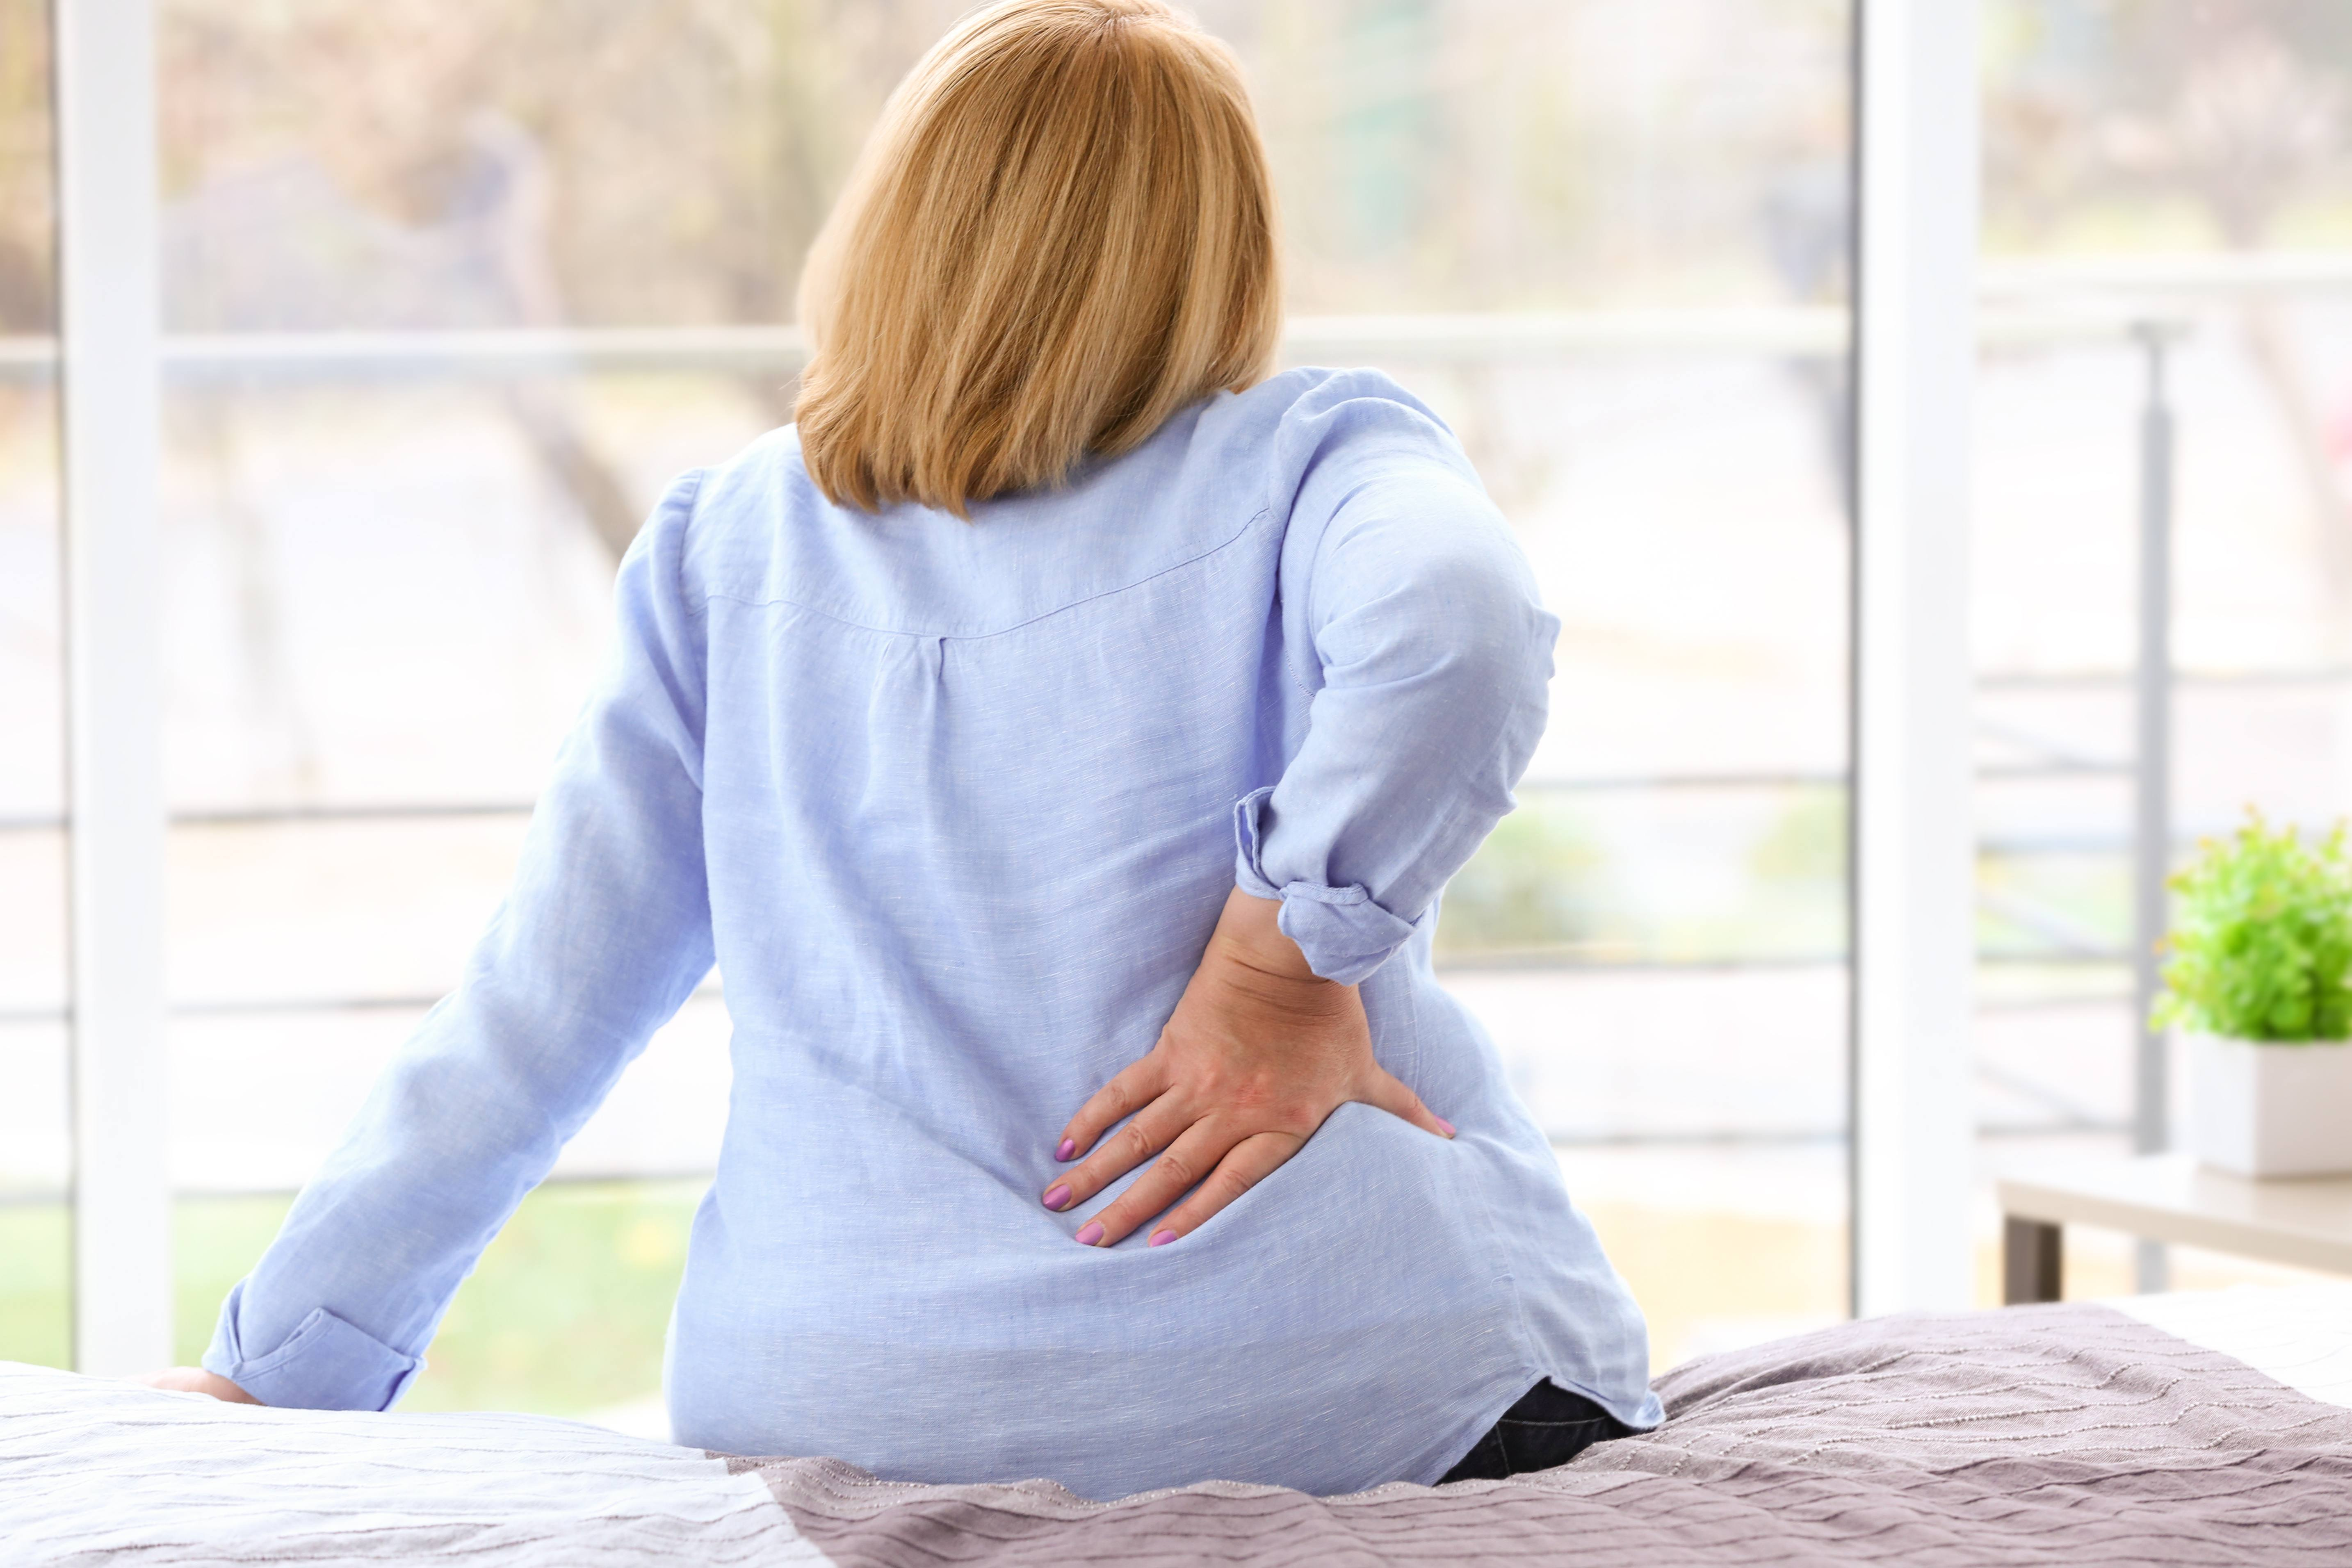 a middle-aged woman sitting on a bed with her hand on her back revealing pain